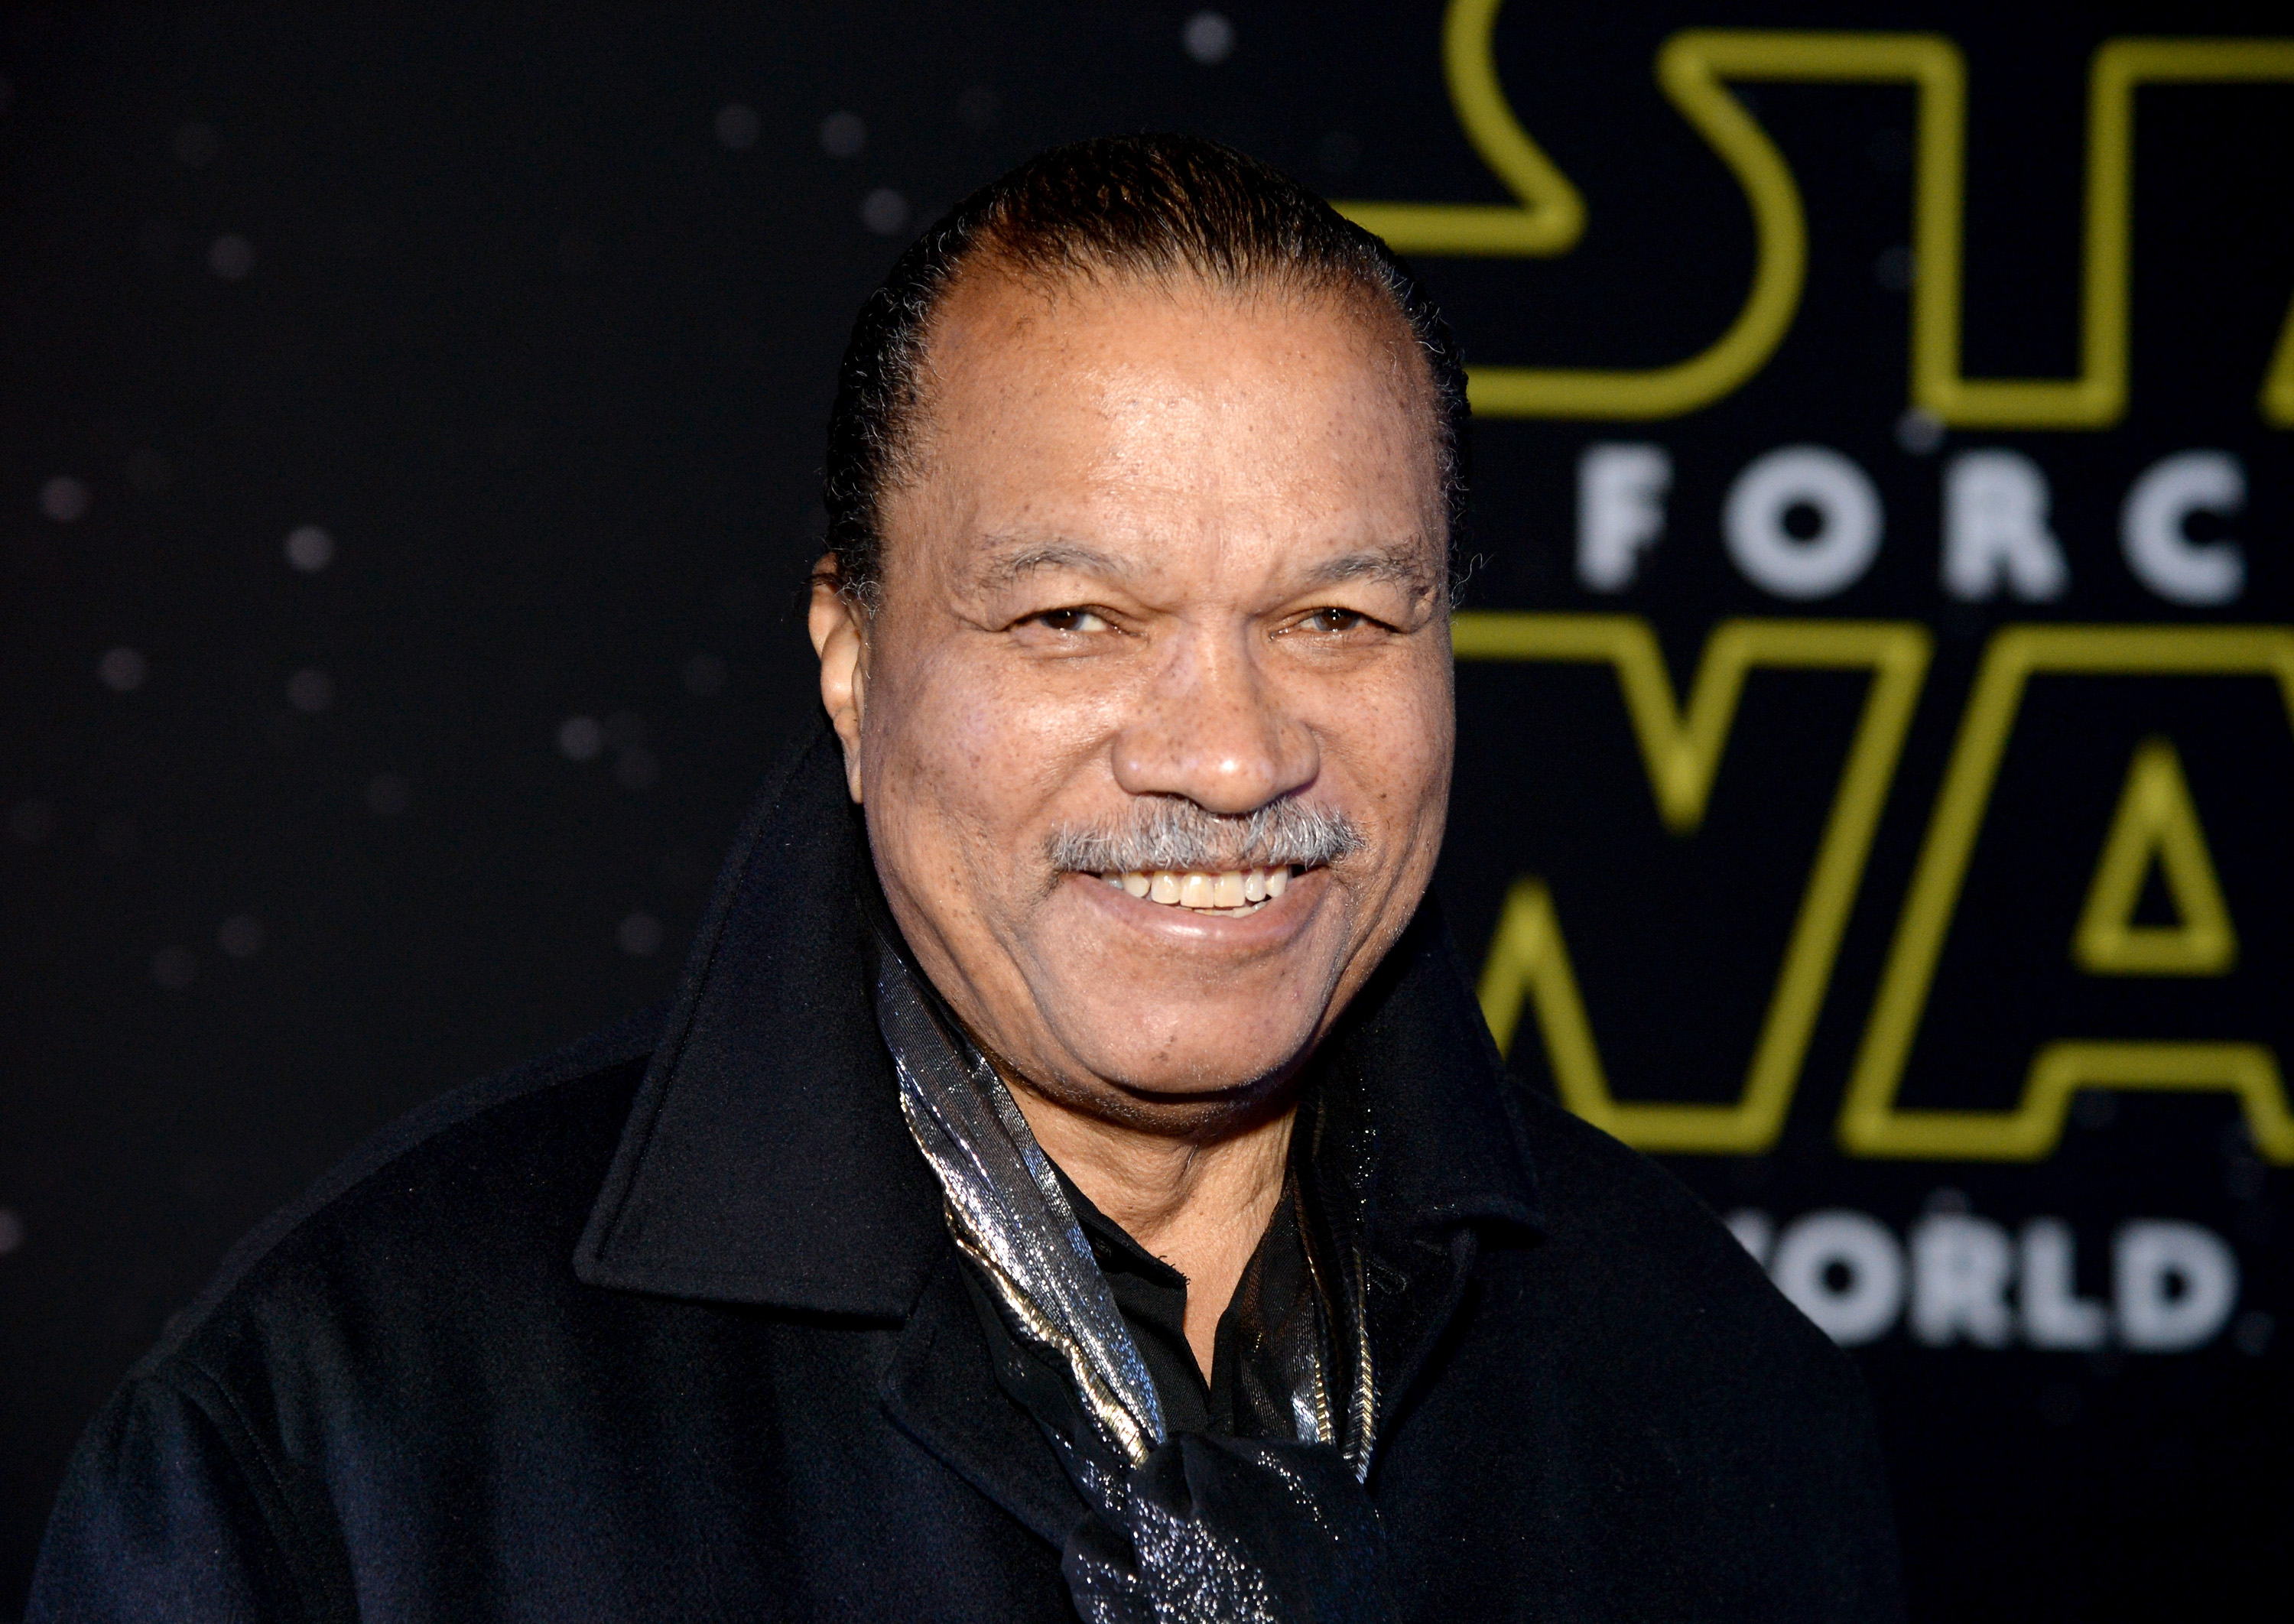 'Star Wars: The Force Awakens' Hollywood Premiere Sponsored By Dodge